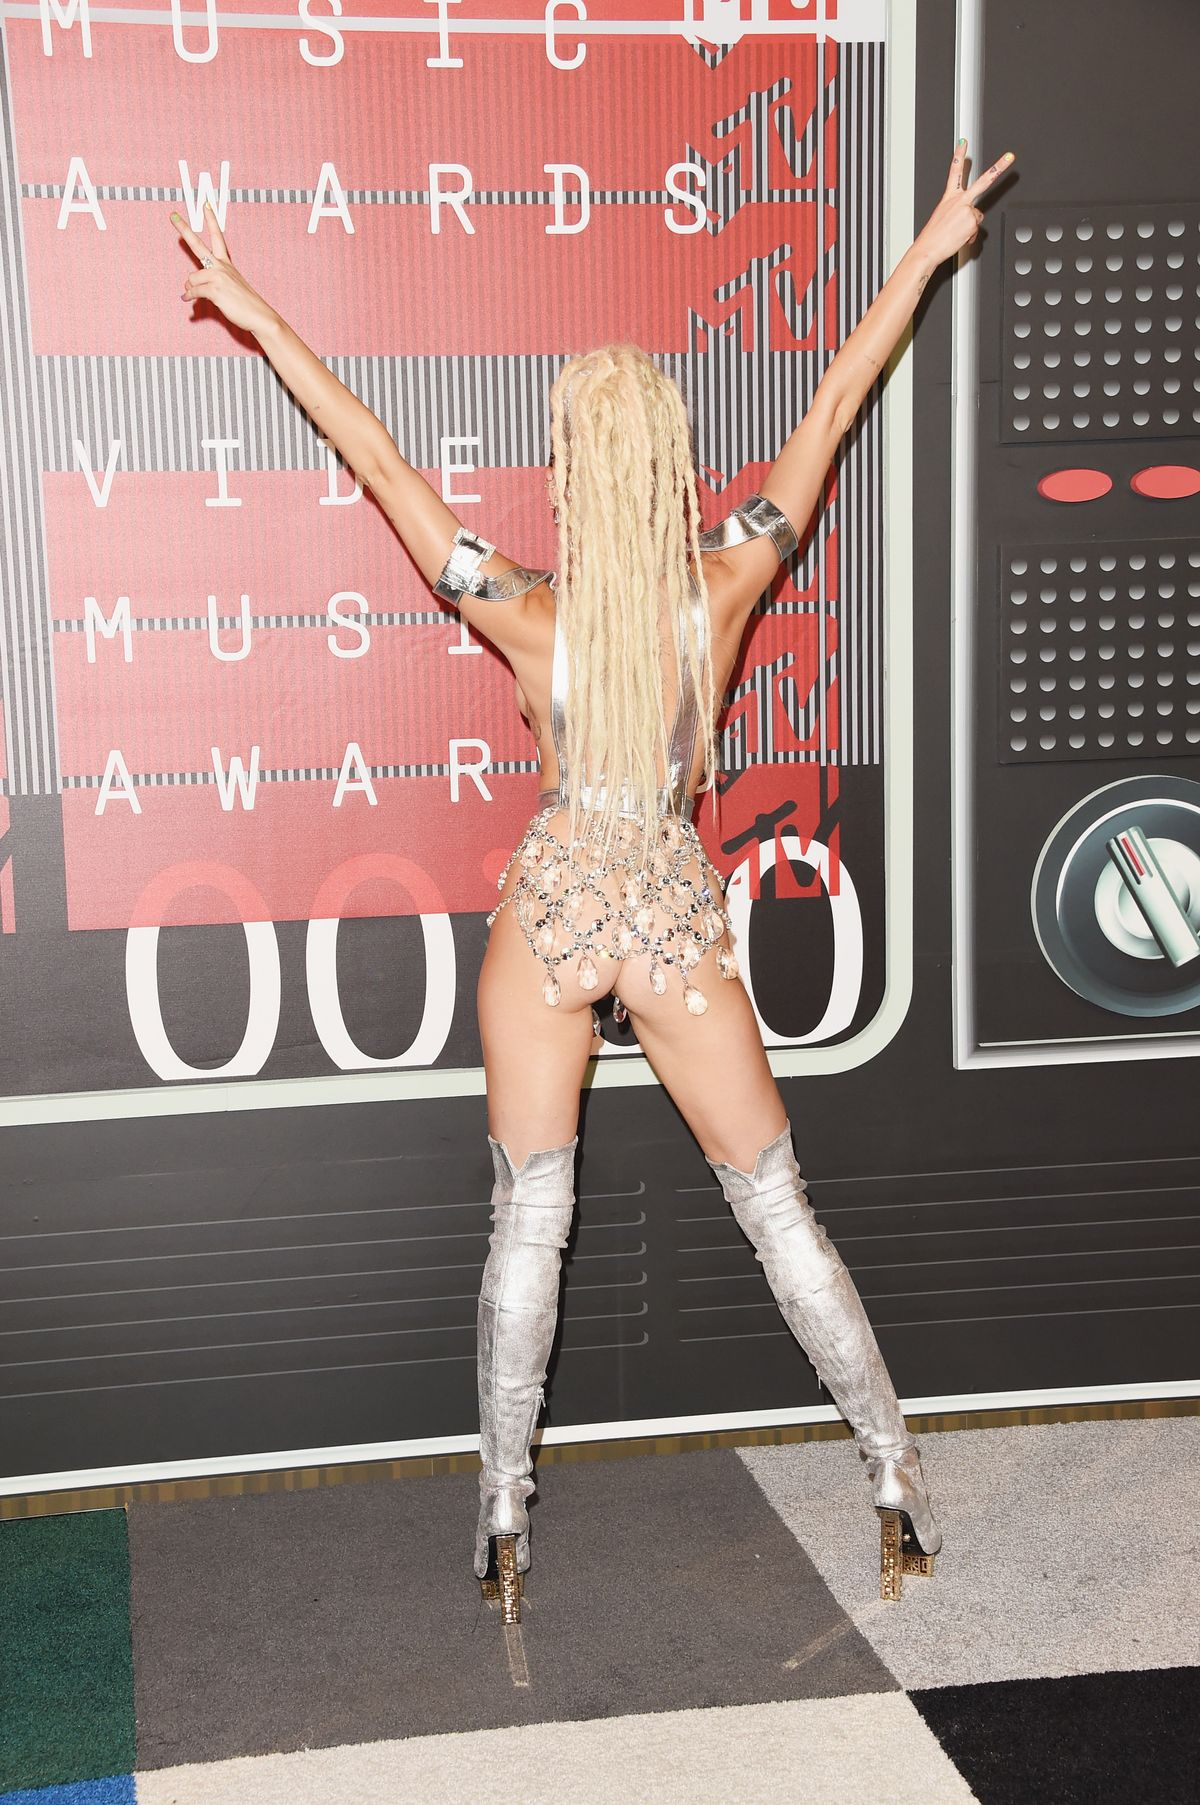 LOS ANGELES, CA - AUGUST 30: (EDITORS NOTE: Image contains nudity.) Host Miley Cyrus attends the 2015 MTV Video Music Awards at Microsoft Theater on August 30, 2015 in Los Angeles, California. (Photo by Jason Merritt/Getty Images)